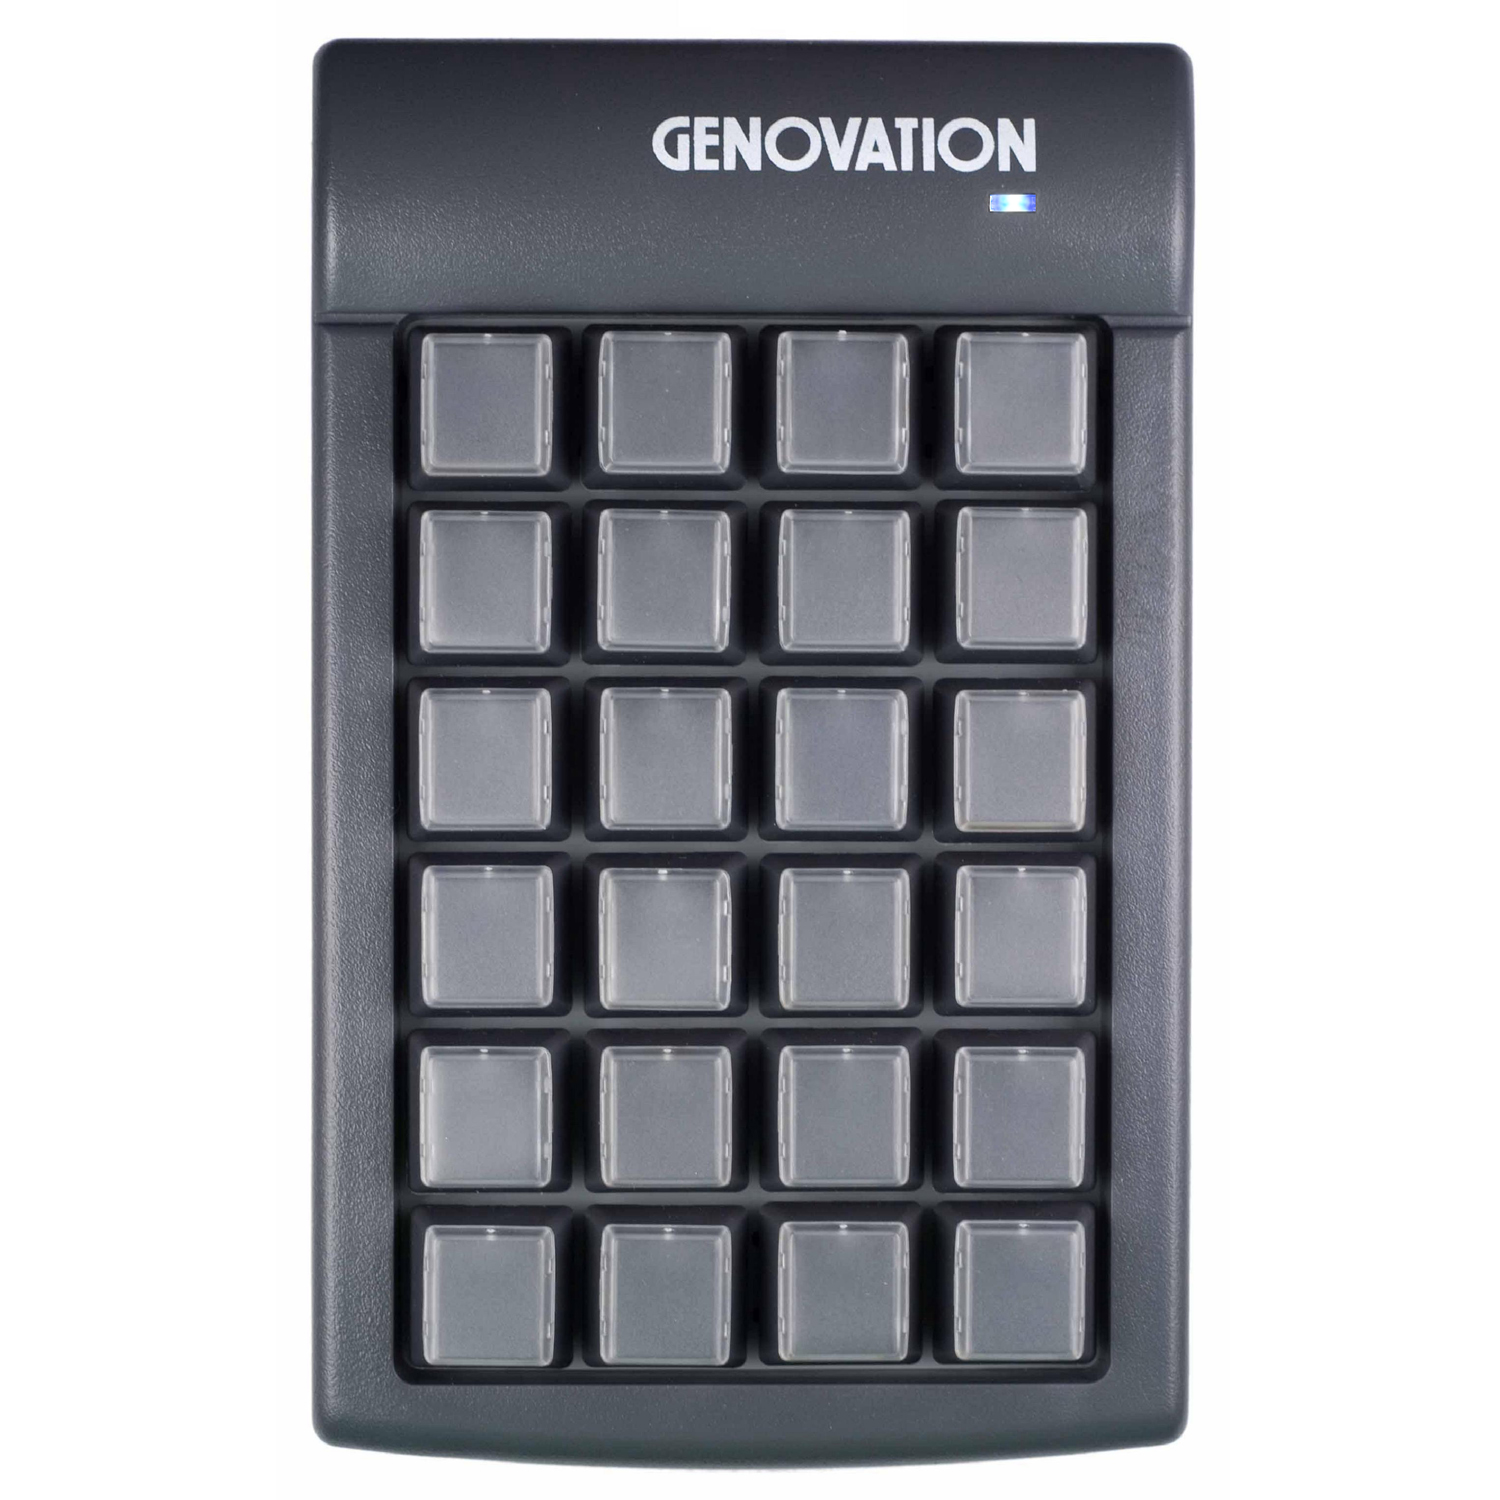 genovation controlpad 684 programmable rs 232 serial keypad ebay. Black Bedroom Furniture Sets. Home Design Ideas